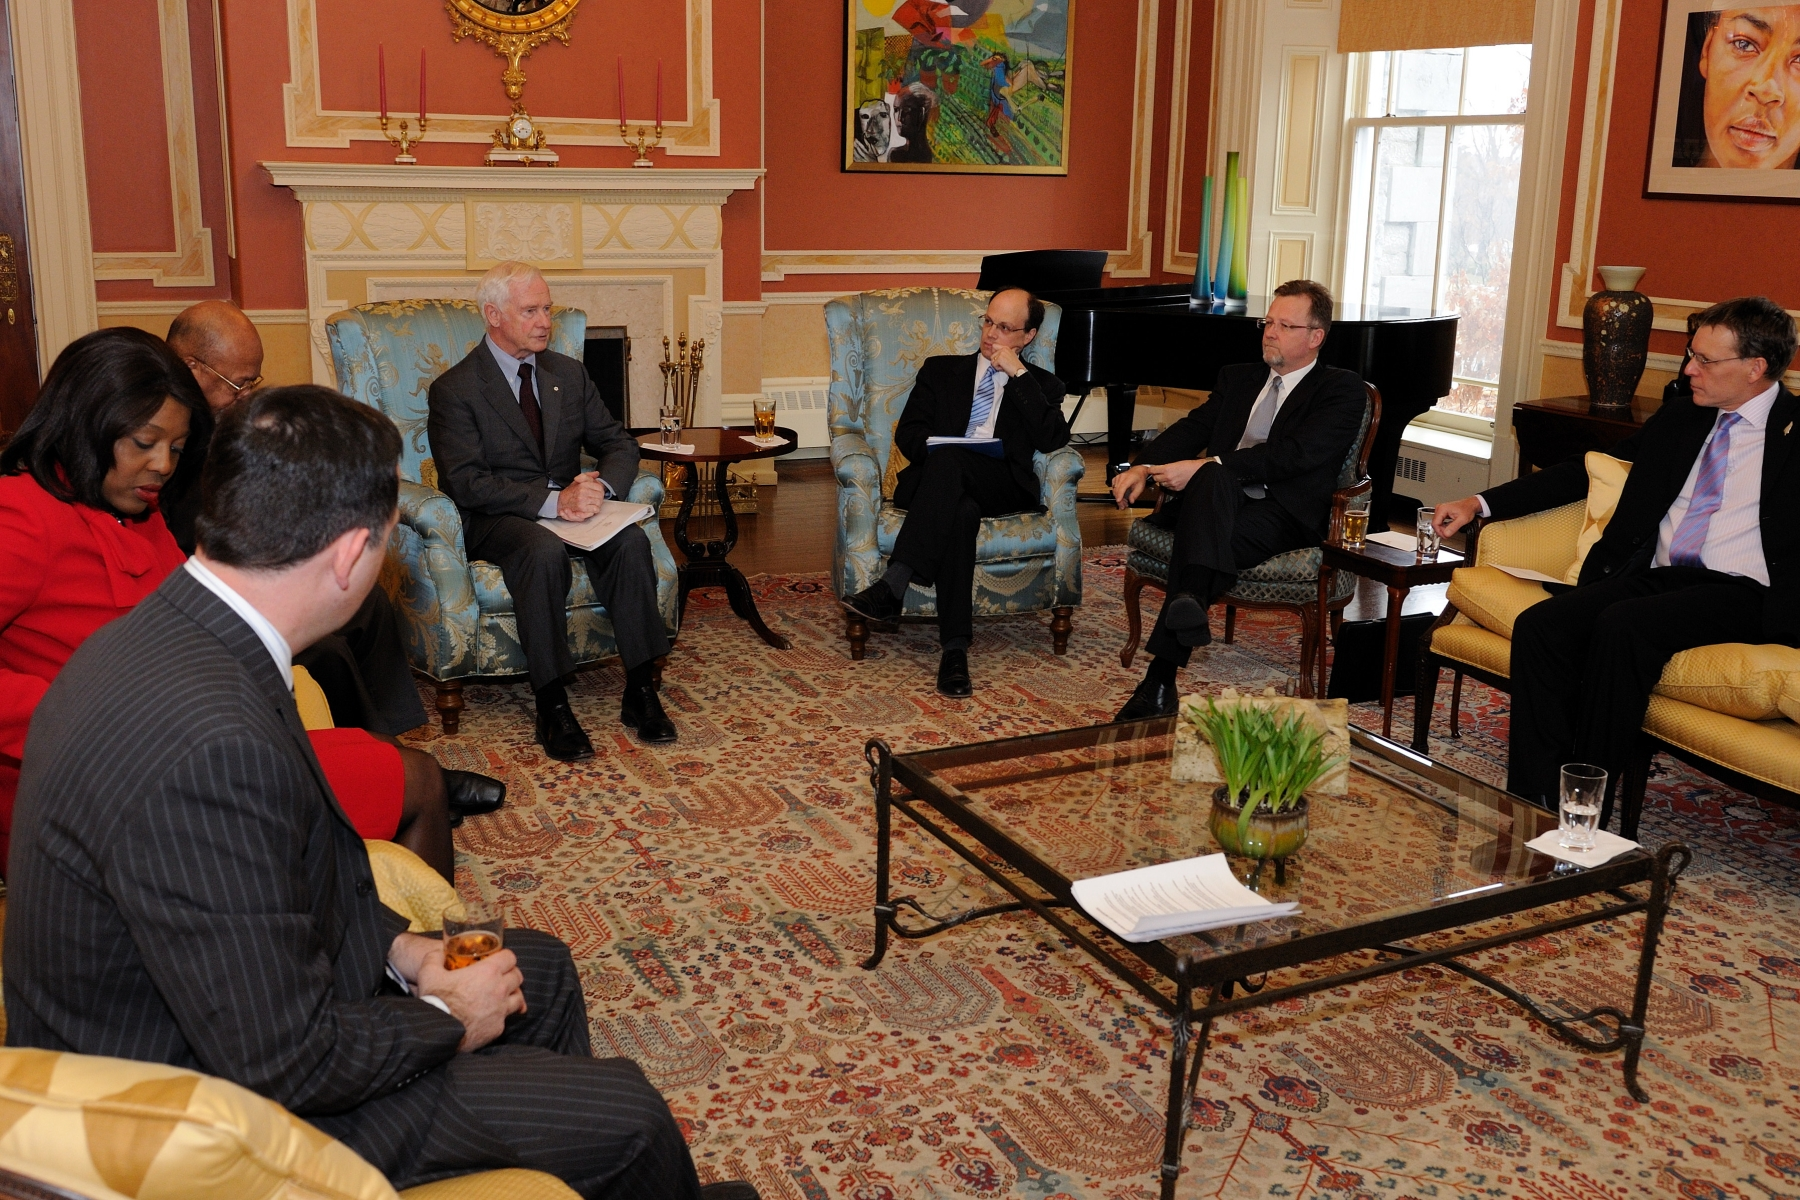 The meeting was held in the Large Drawing room inside the official residence.